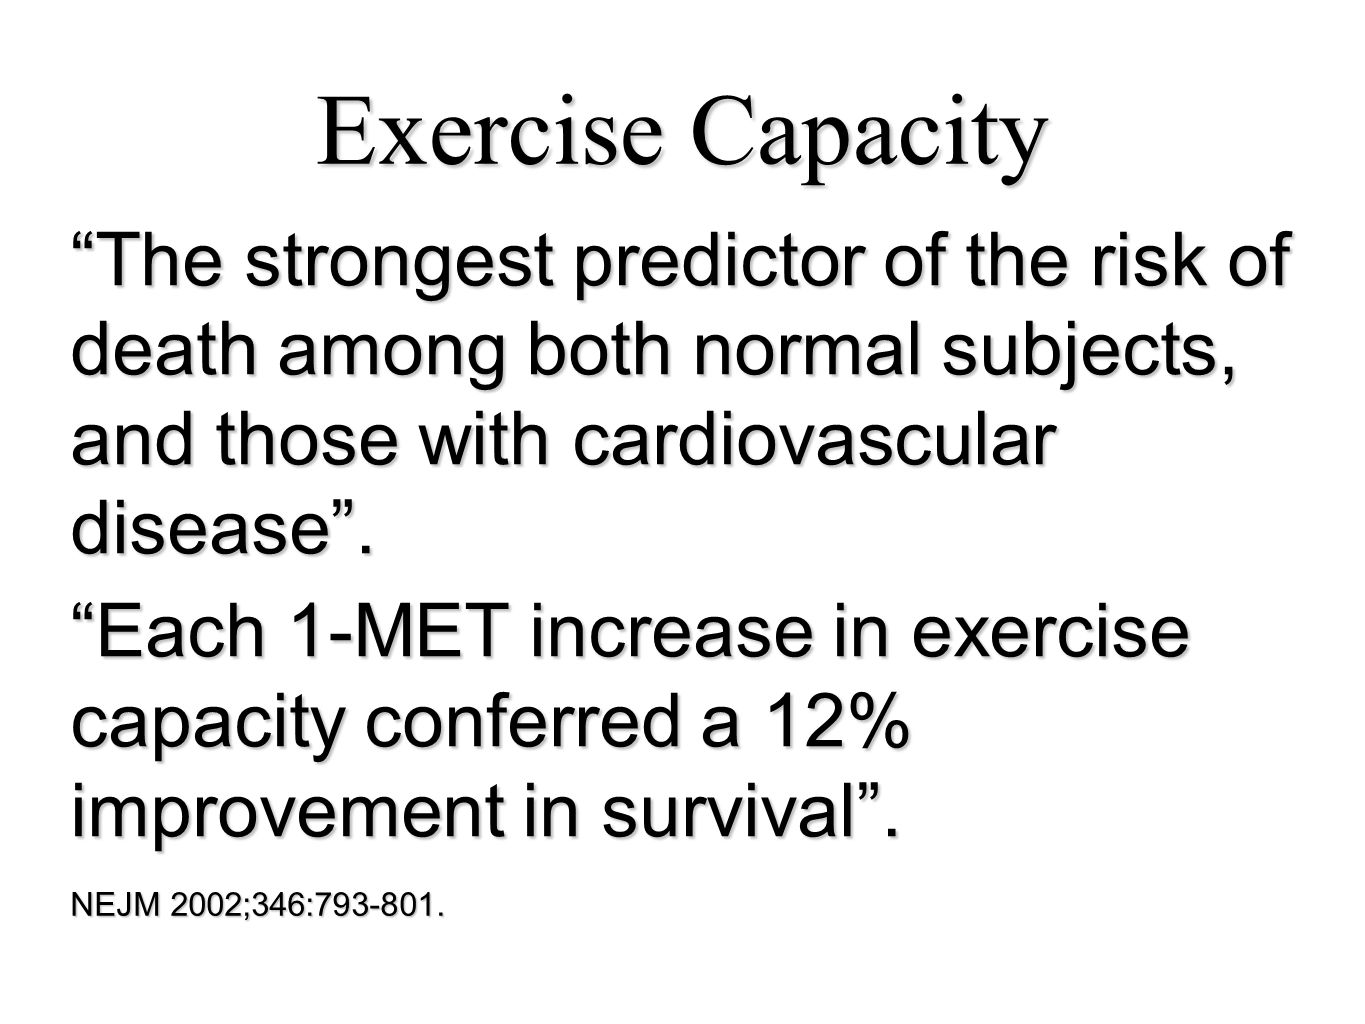 Exercise Capacity The strongest predictor of the risk of death among both normal subjects, and those with cardiovascular disease .